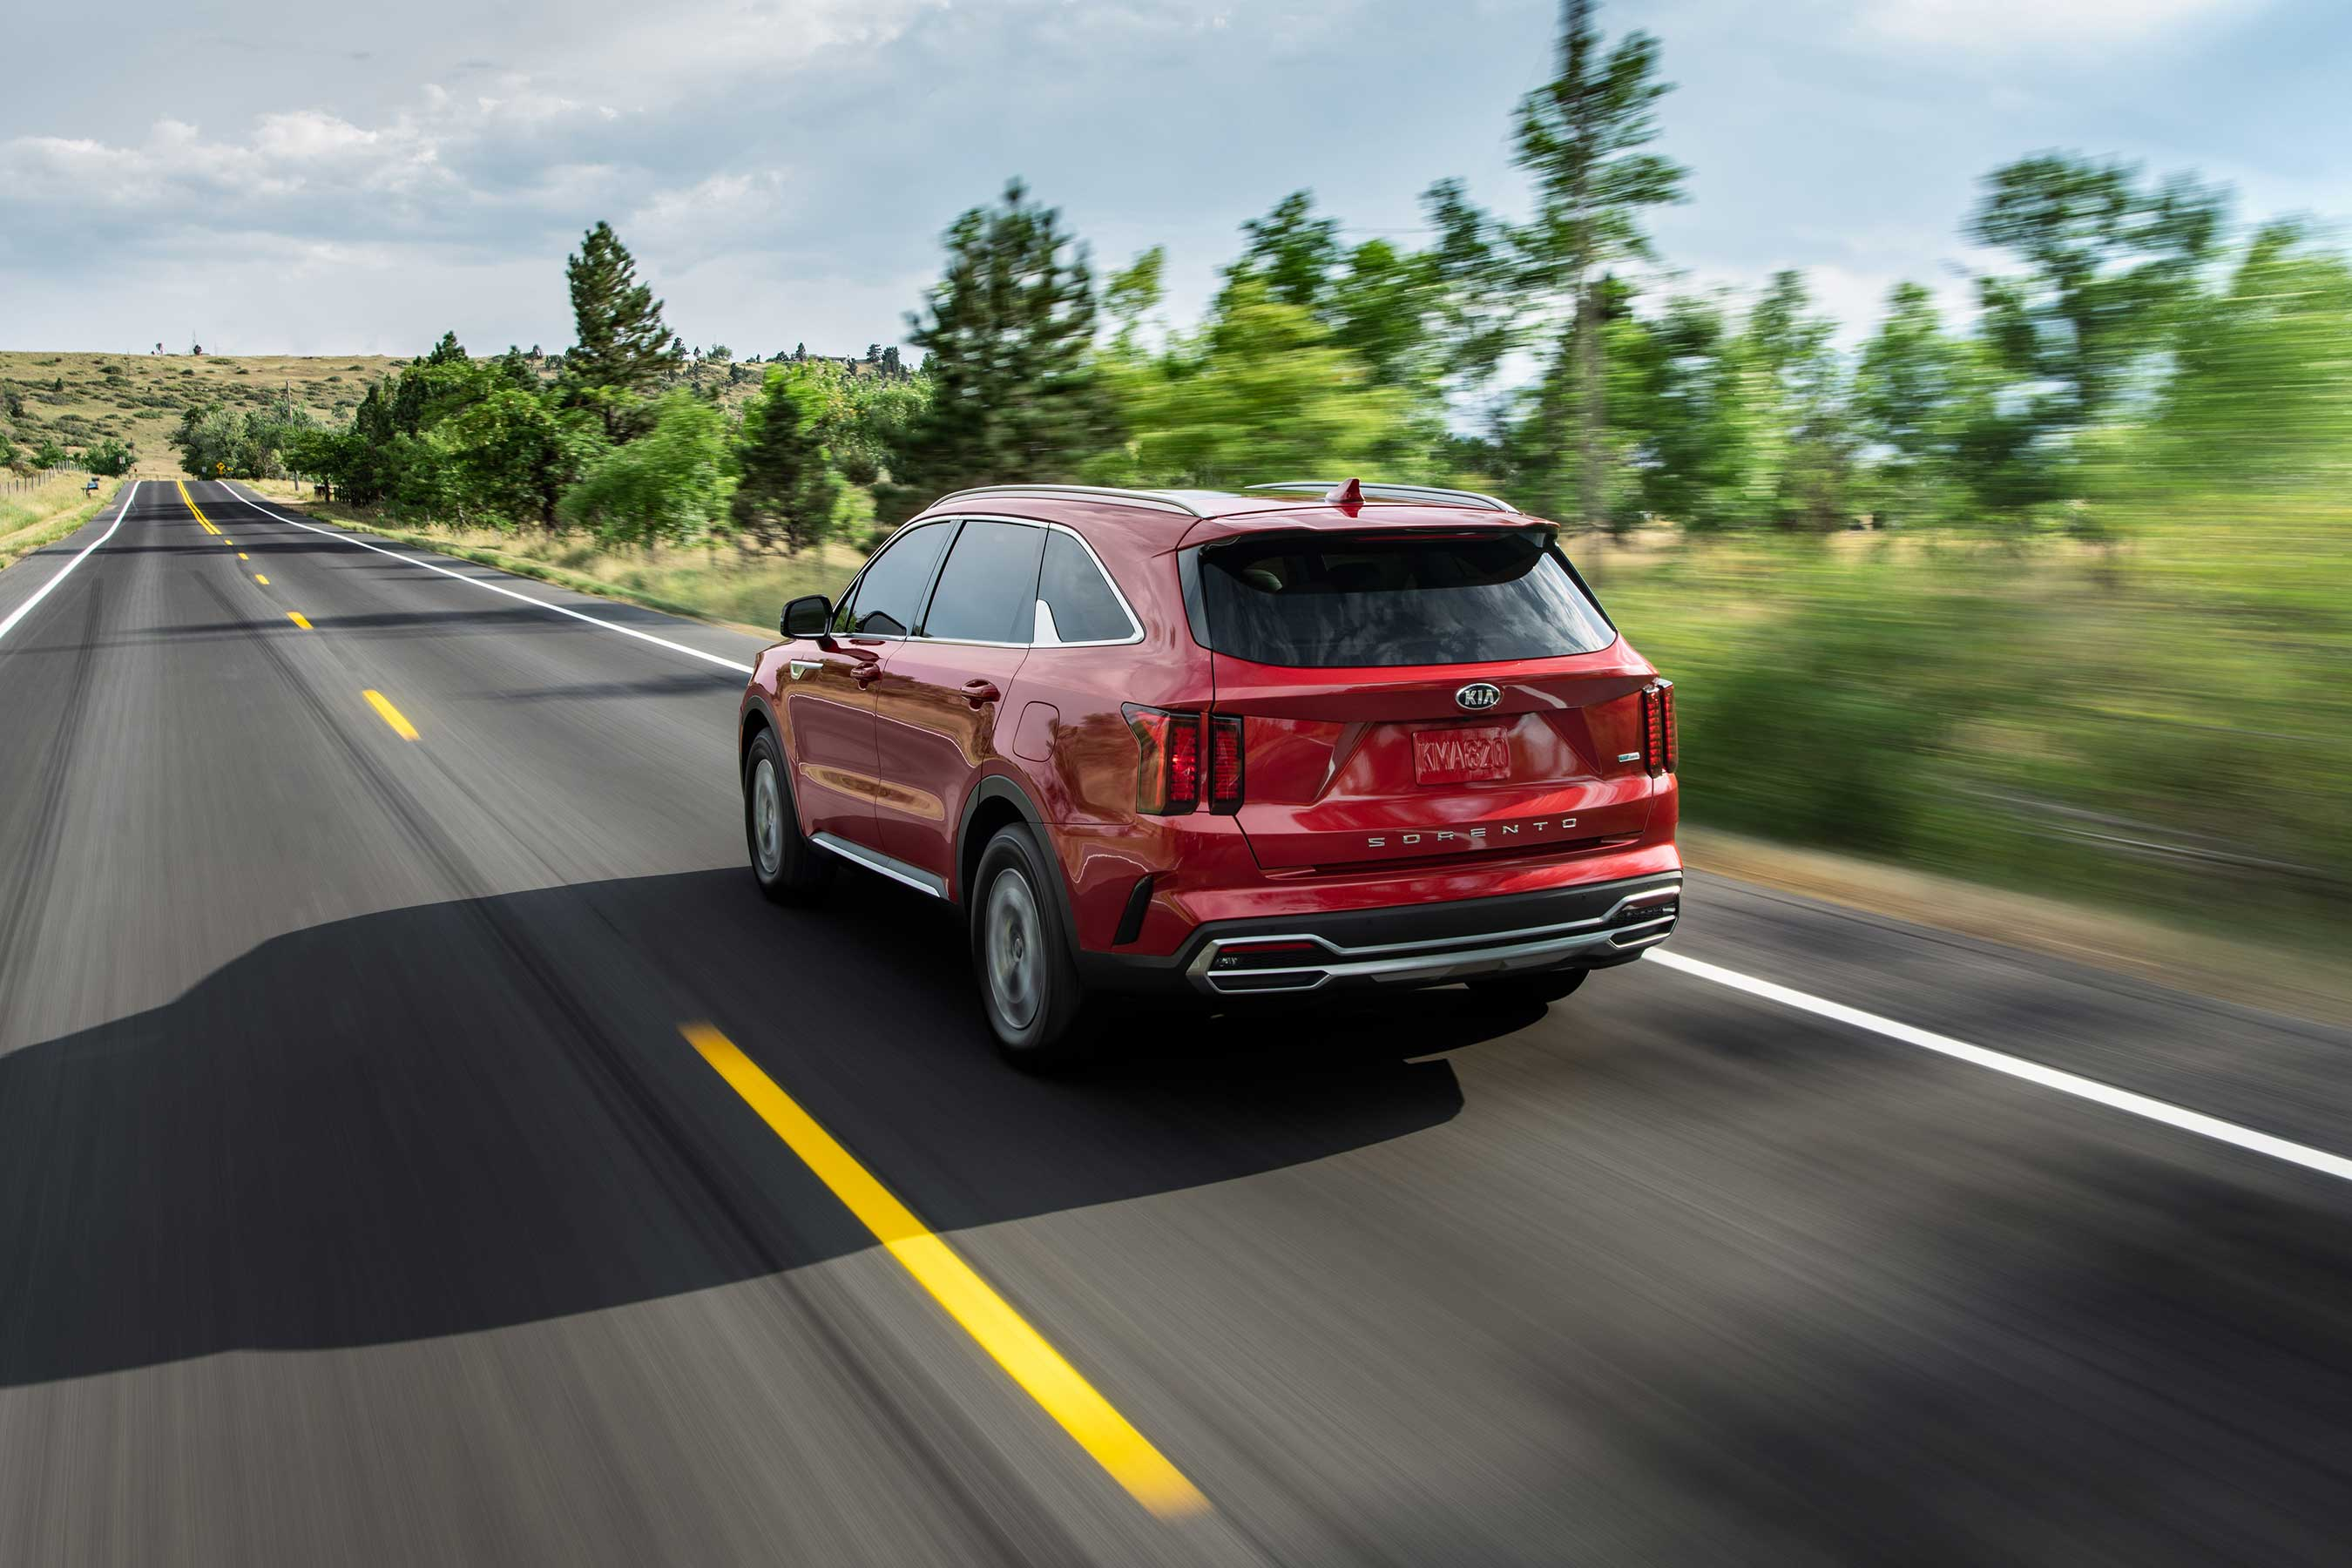 The all-new 2021 Kia Sorento features a segment exclusive turbo hybrid engine that delivers 227-horsepower and an estimated 37 MPG combined.